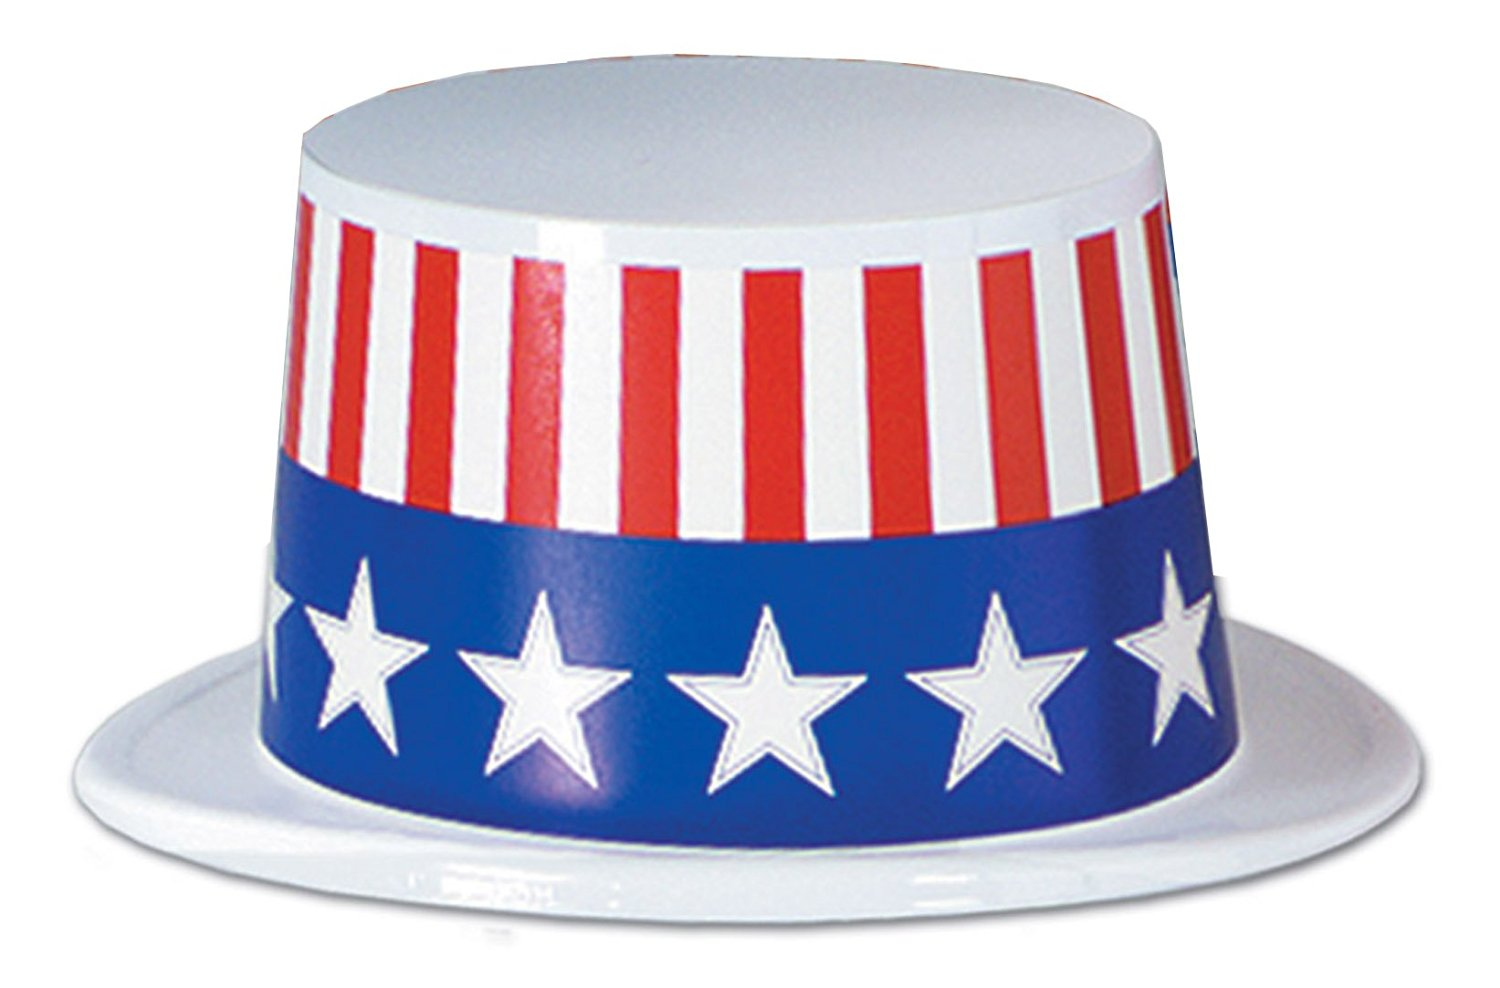 Beistle 66629-W25 25 Pieces Plastic Topper Hat with Patriotic Band, Red/White/Blue